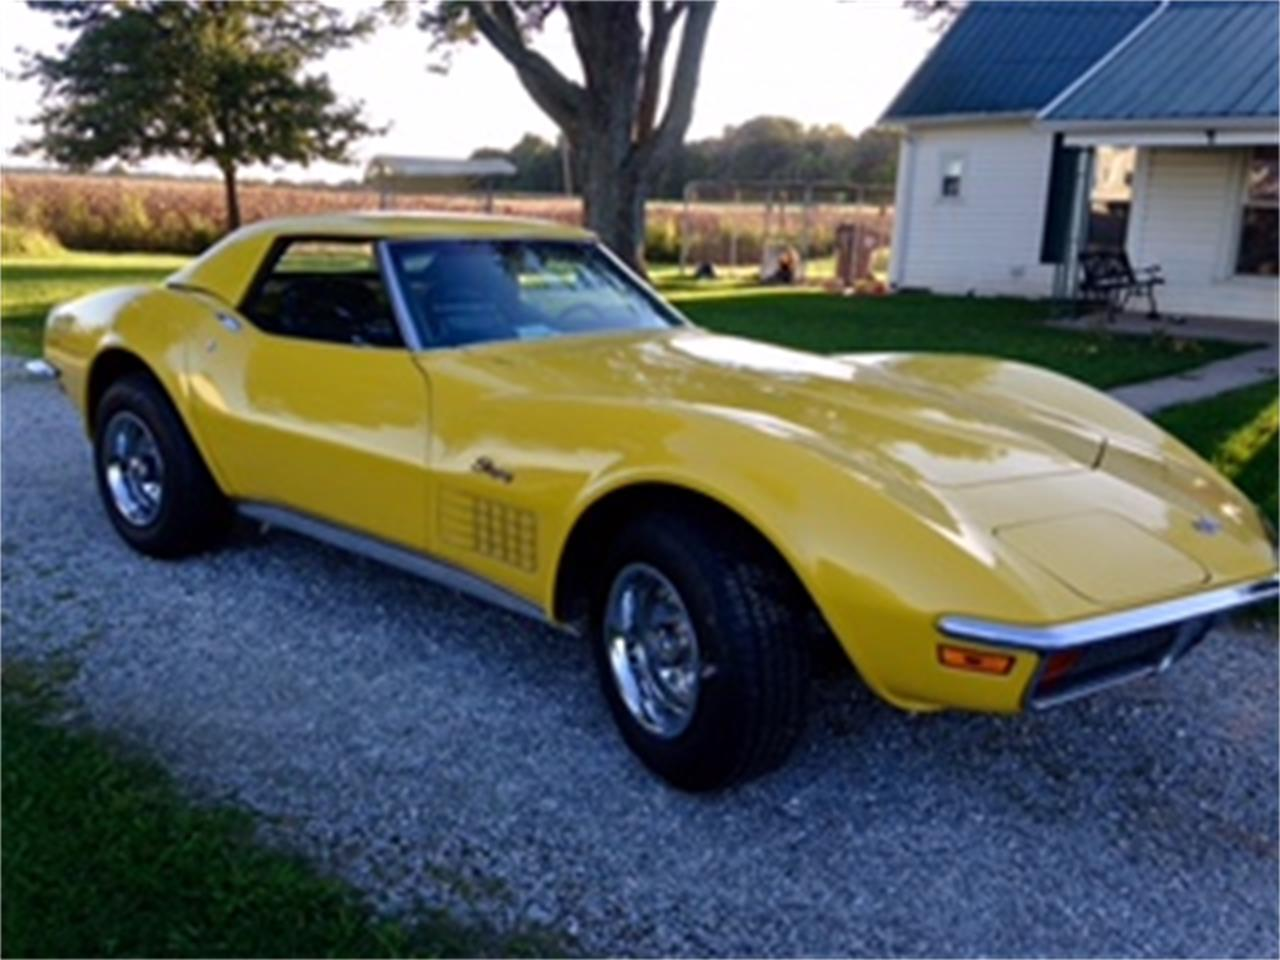 Large Picture of Classic '72 Chevrolet Corvette located in Alexandria Indiana - $28,000.00 Offered by a Private Seller - JLV4